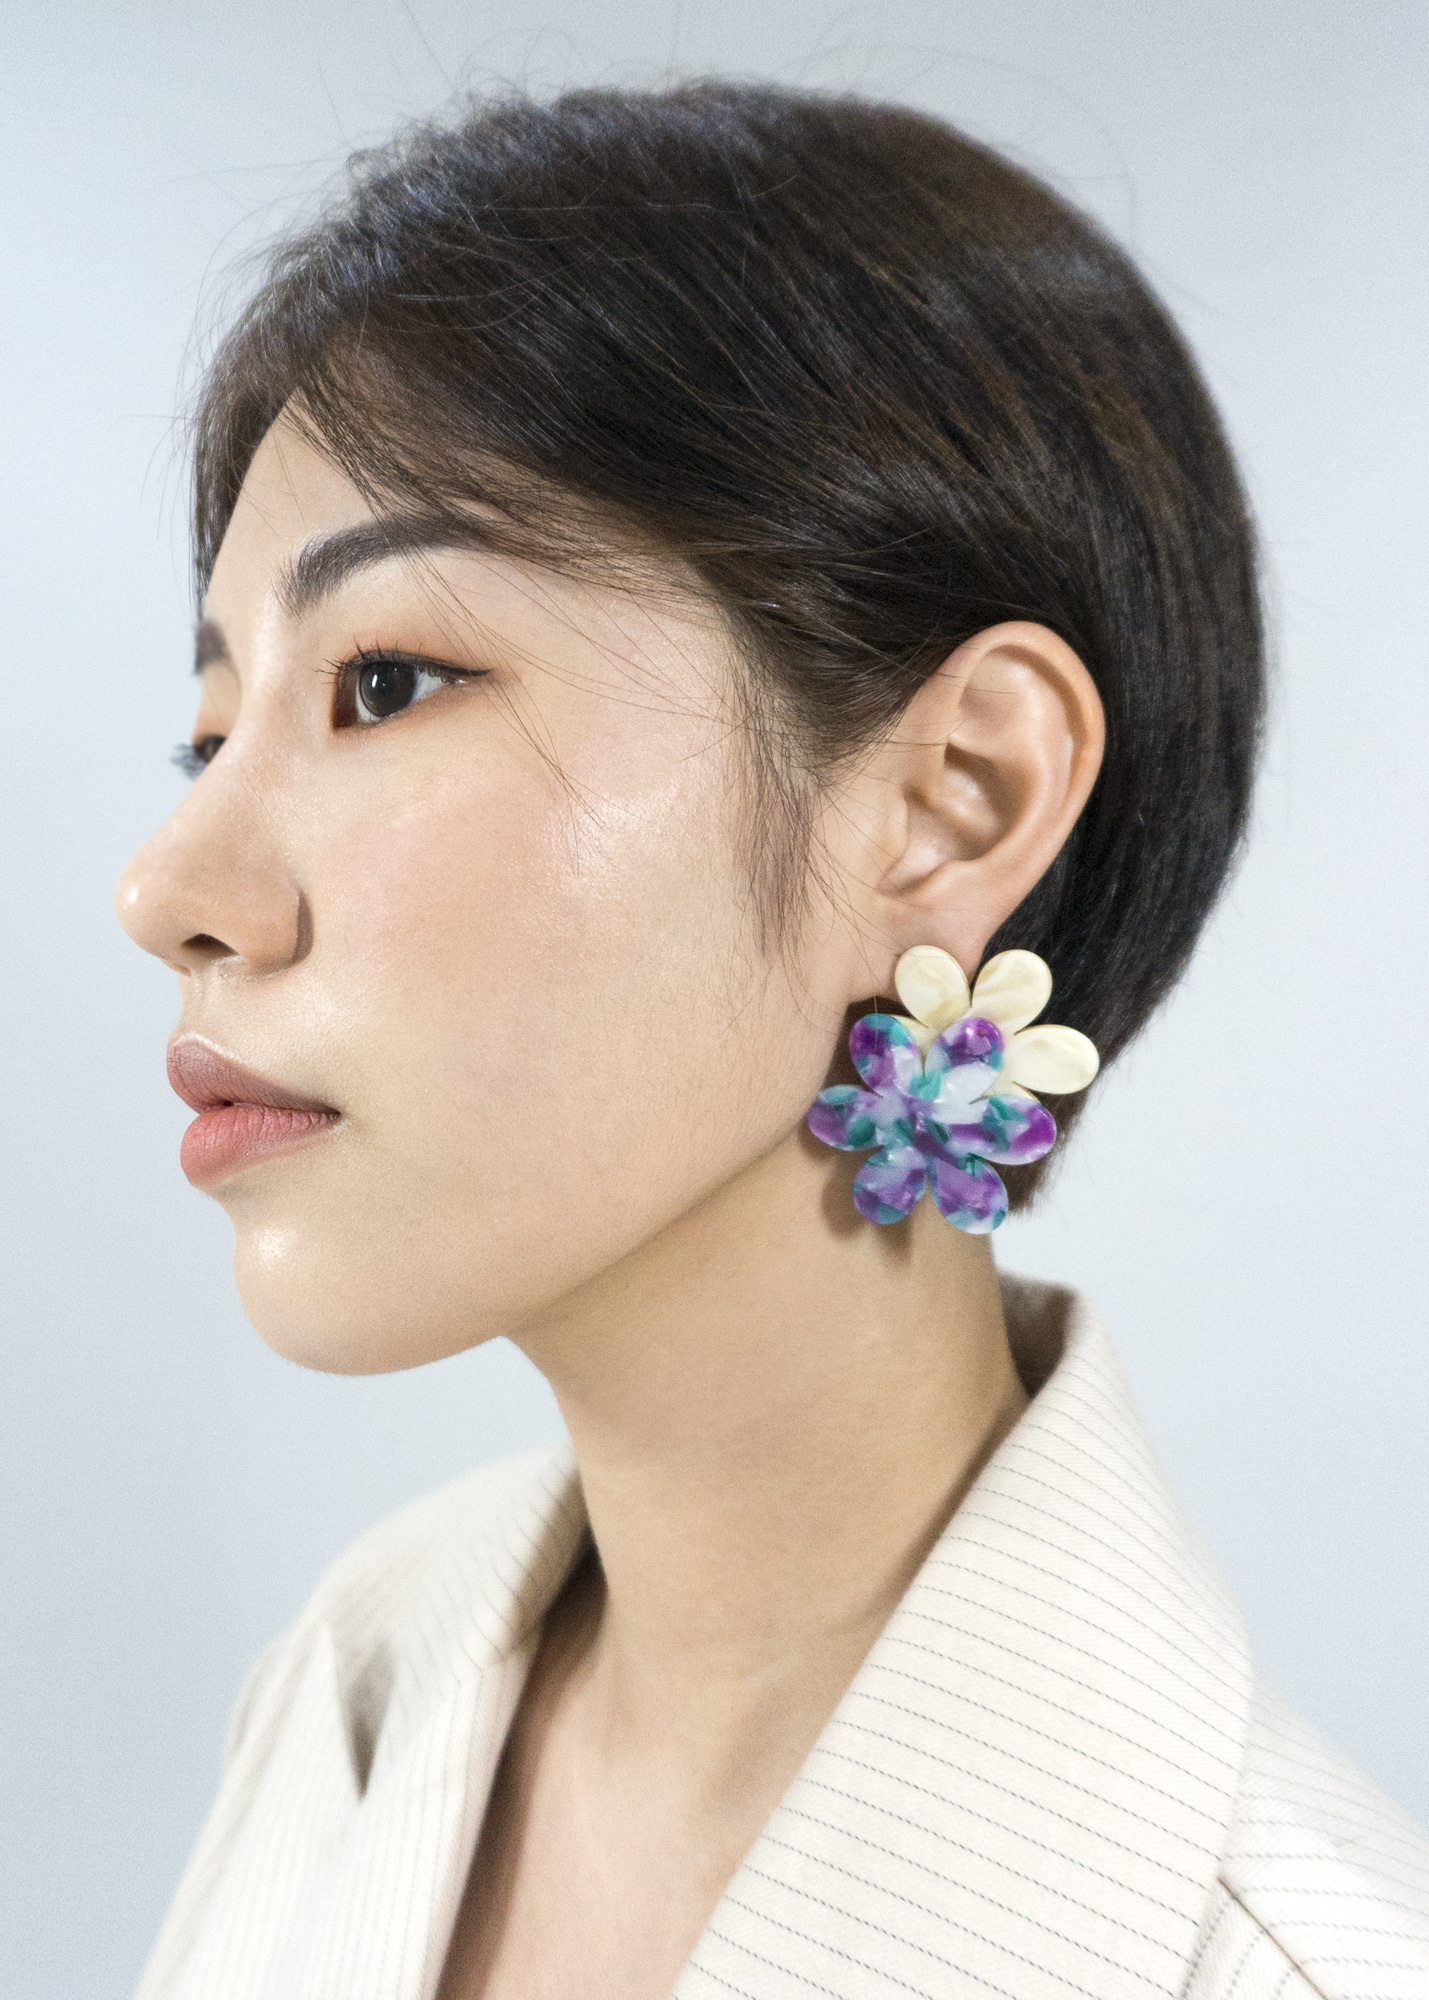 빅 더블 플라워 이어링 BIG DOUBLE FLOWER RESIN EARRING